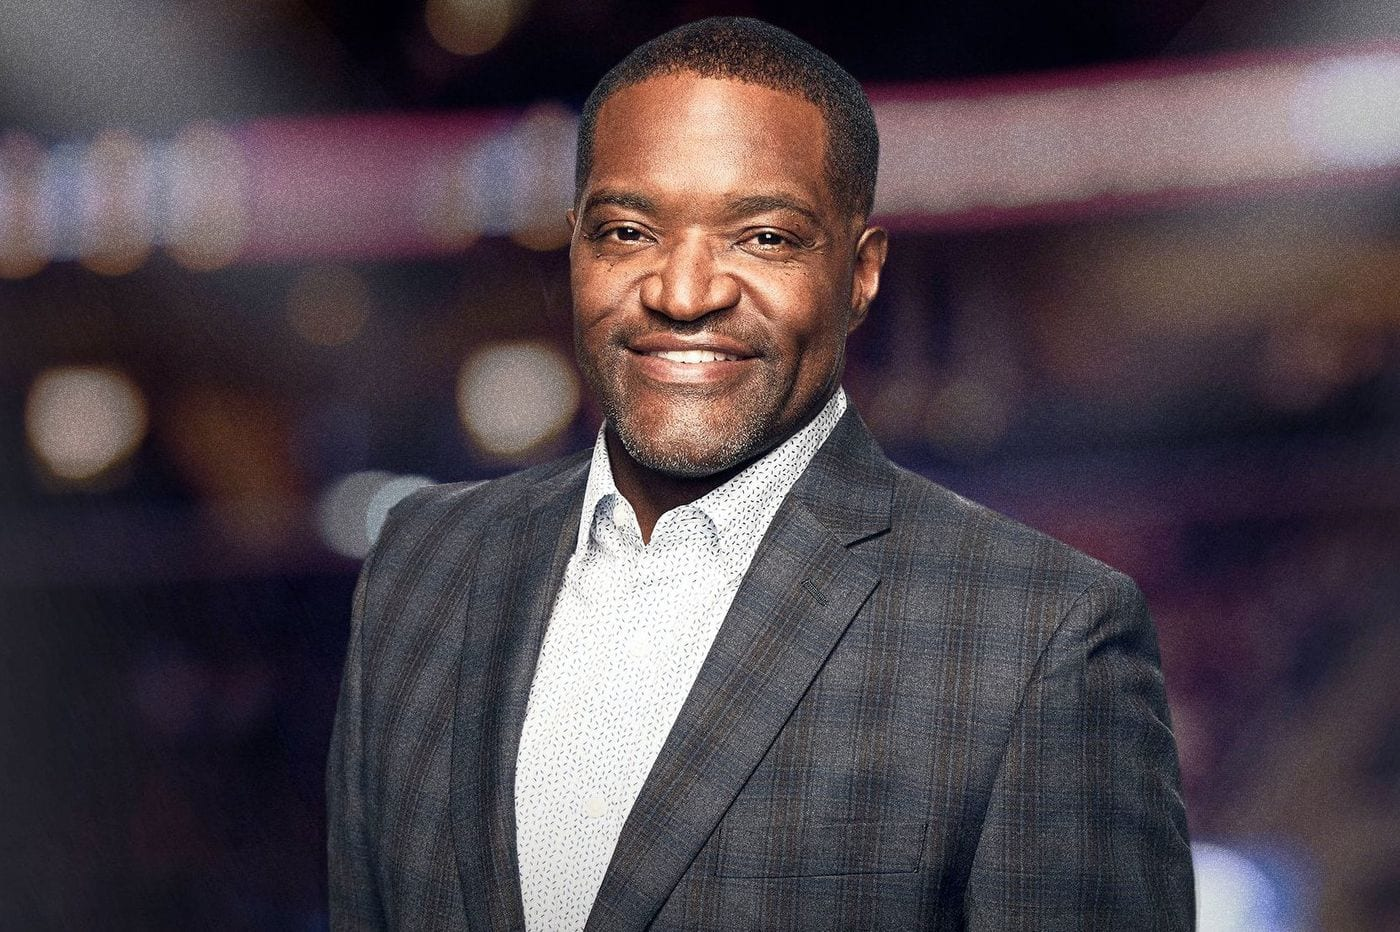 NBA Analyst and Reporter Sekou Smith Dies at 48 From COVID-19